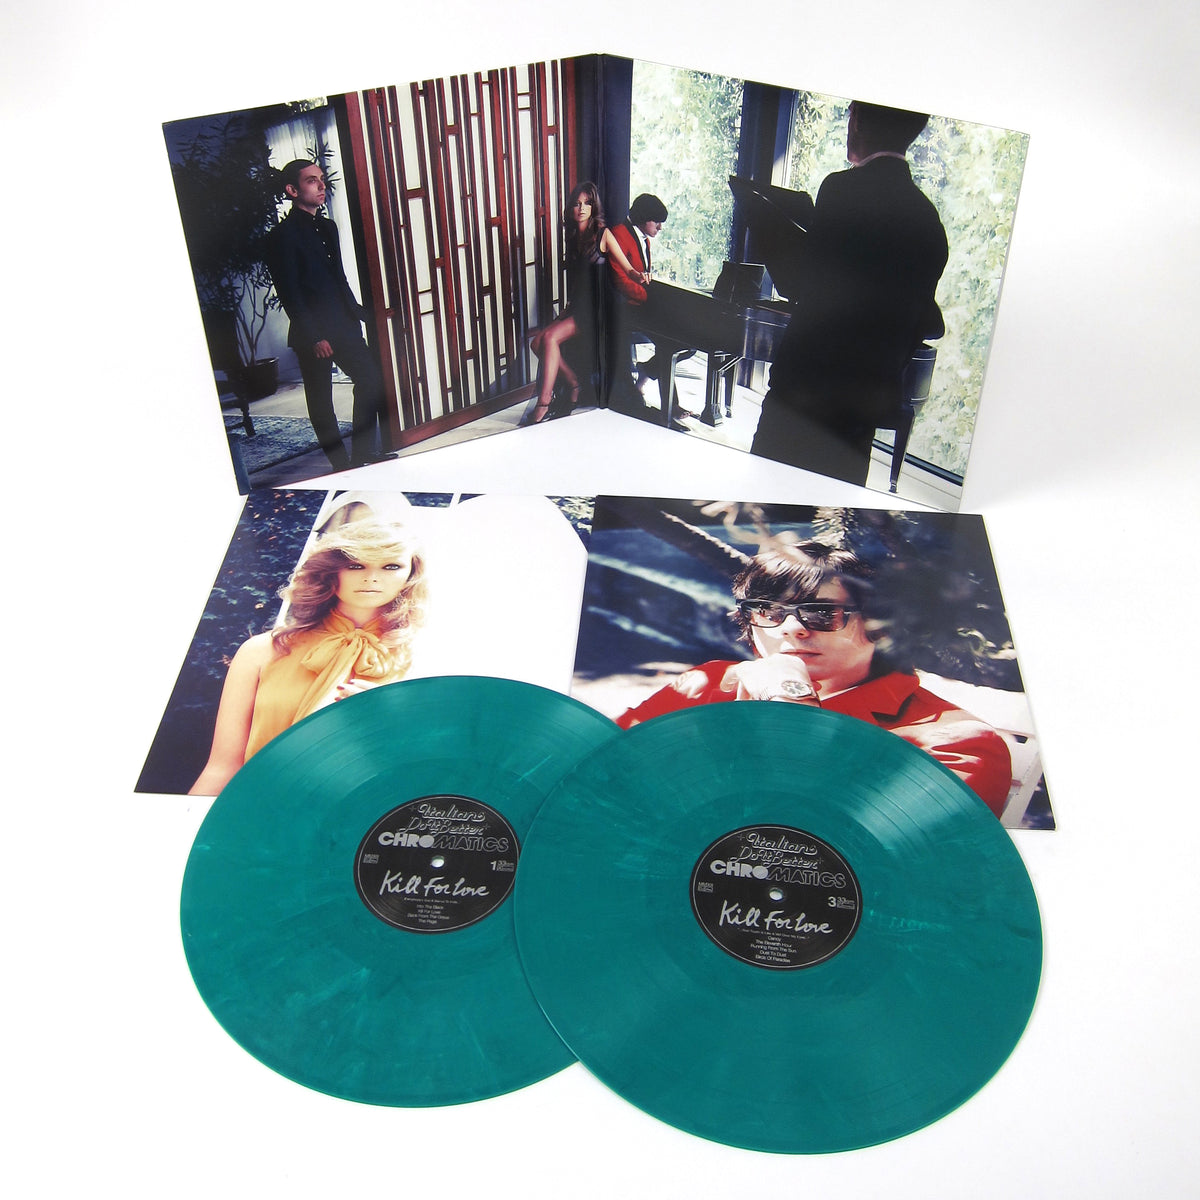 Chromatics: Kill For Love - 5 Year Anniversary Edition (Green Marble Colored Vinyl) Vinyl 2LP